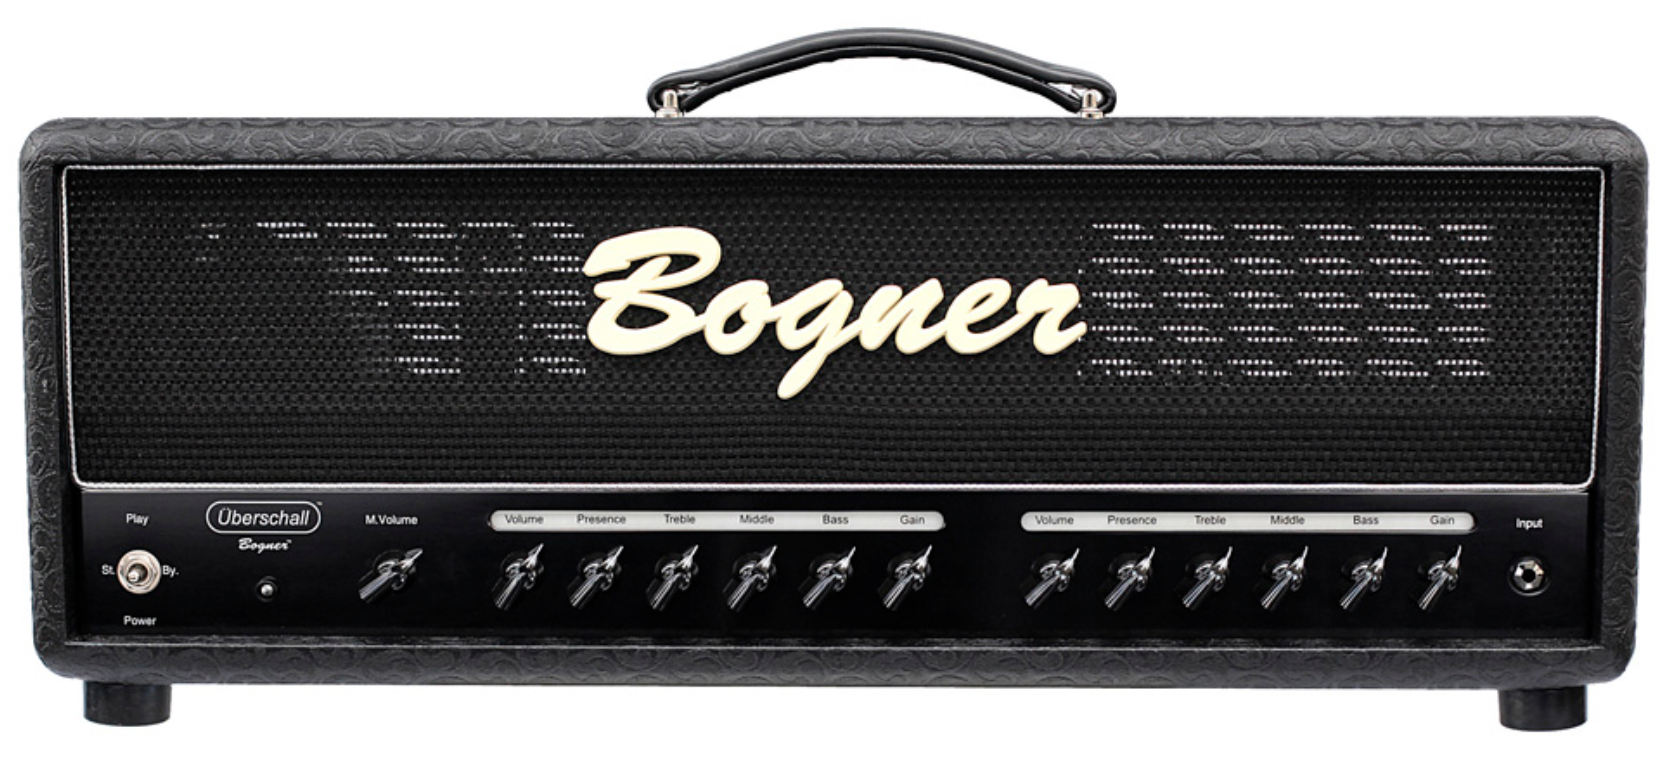 Bogner Ubdershall   Uberschall is the German word for Super Sonic and we designed this amp primarily for extreme, heavy and aggressive styles of music. Detuned or baritone guitars crave this amp.